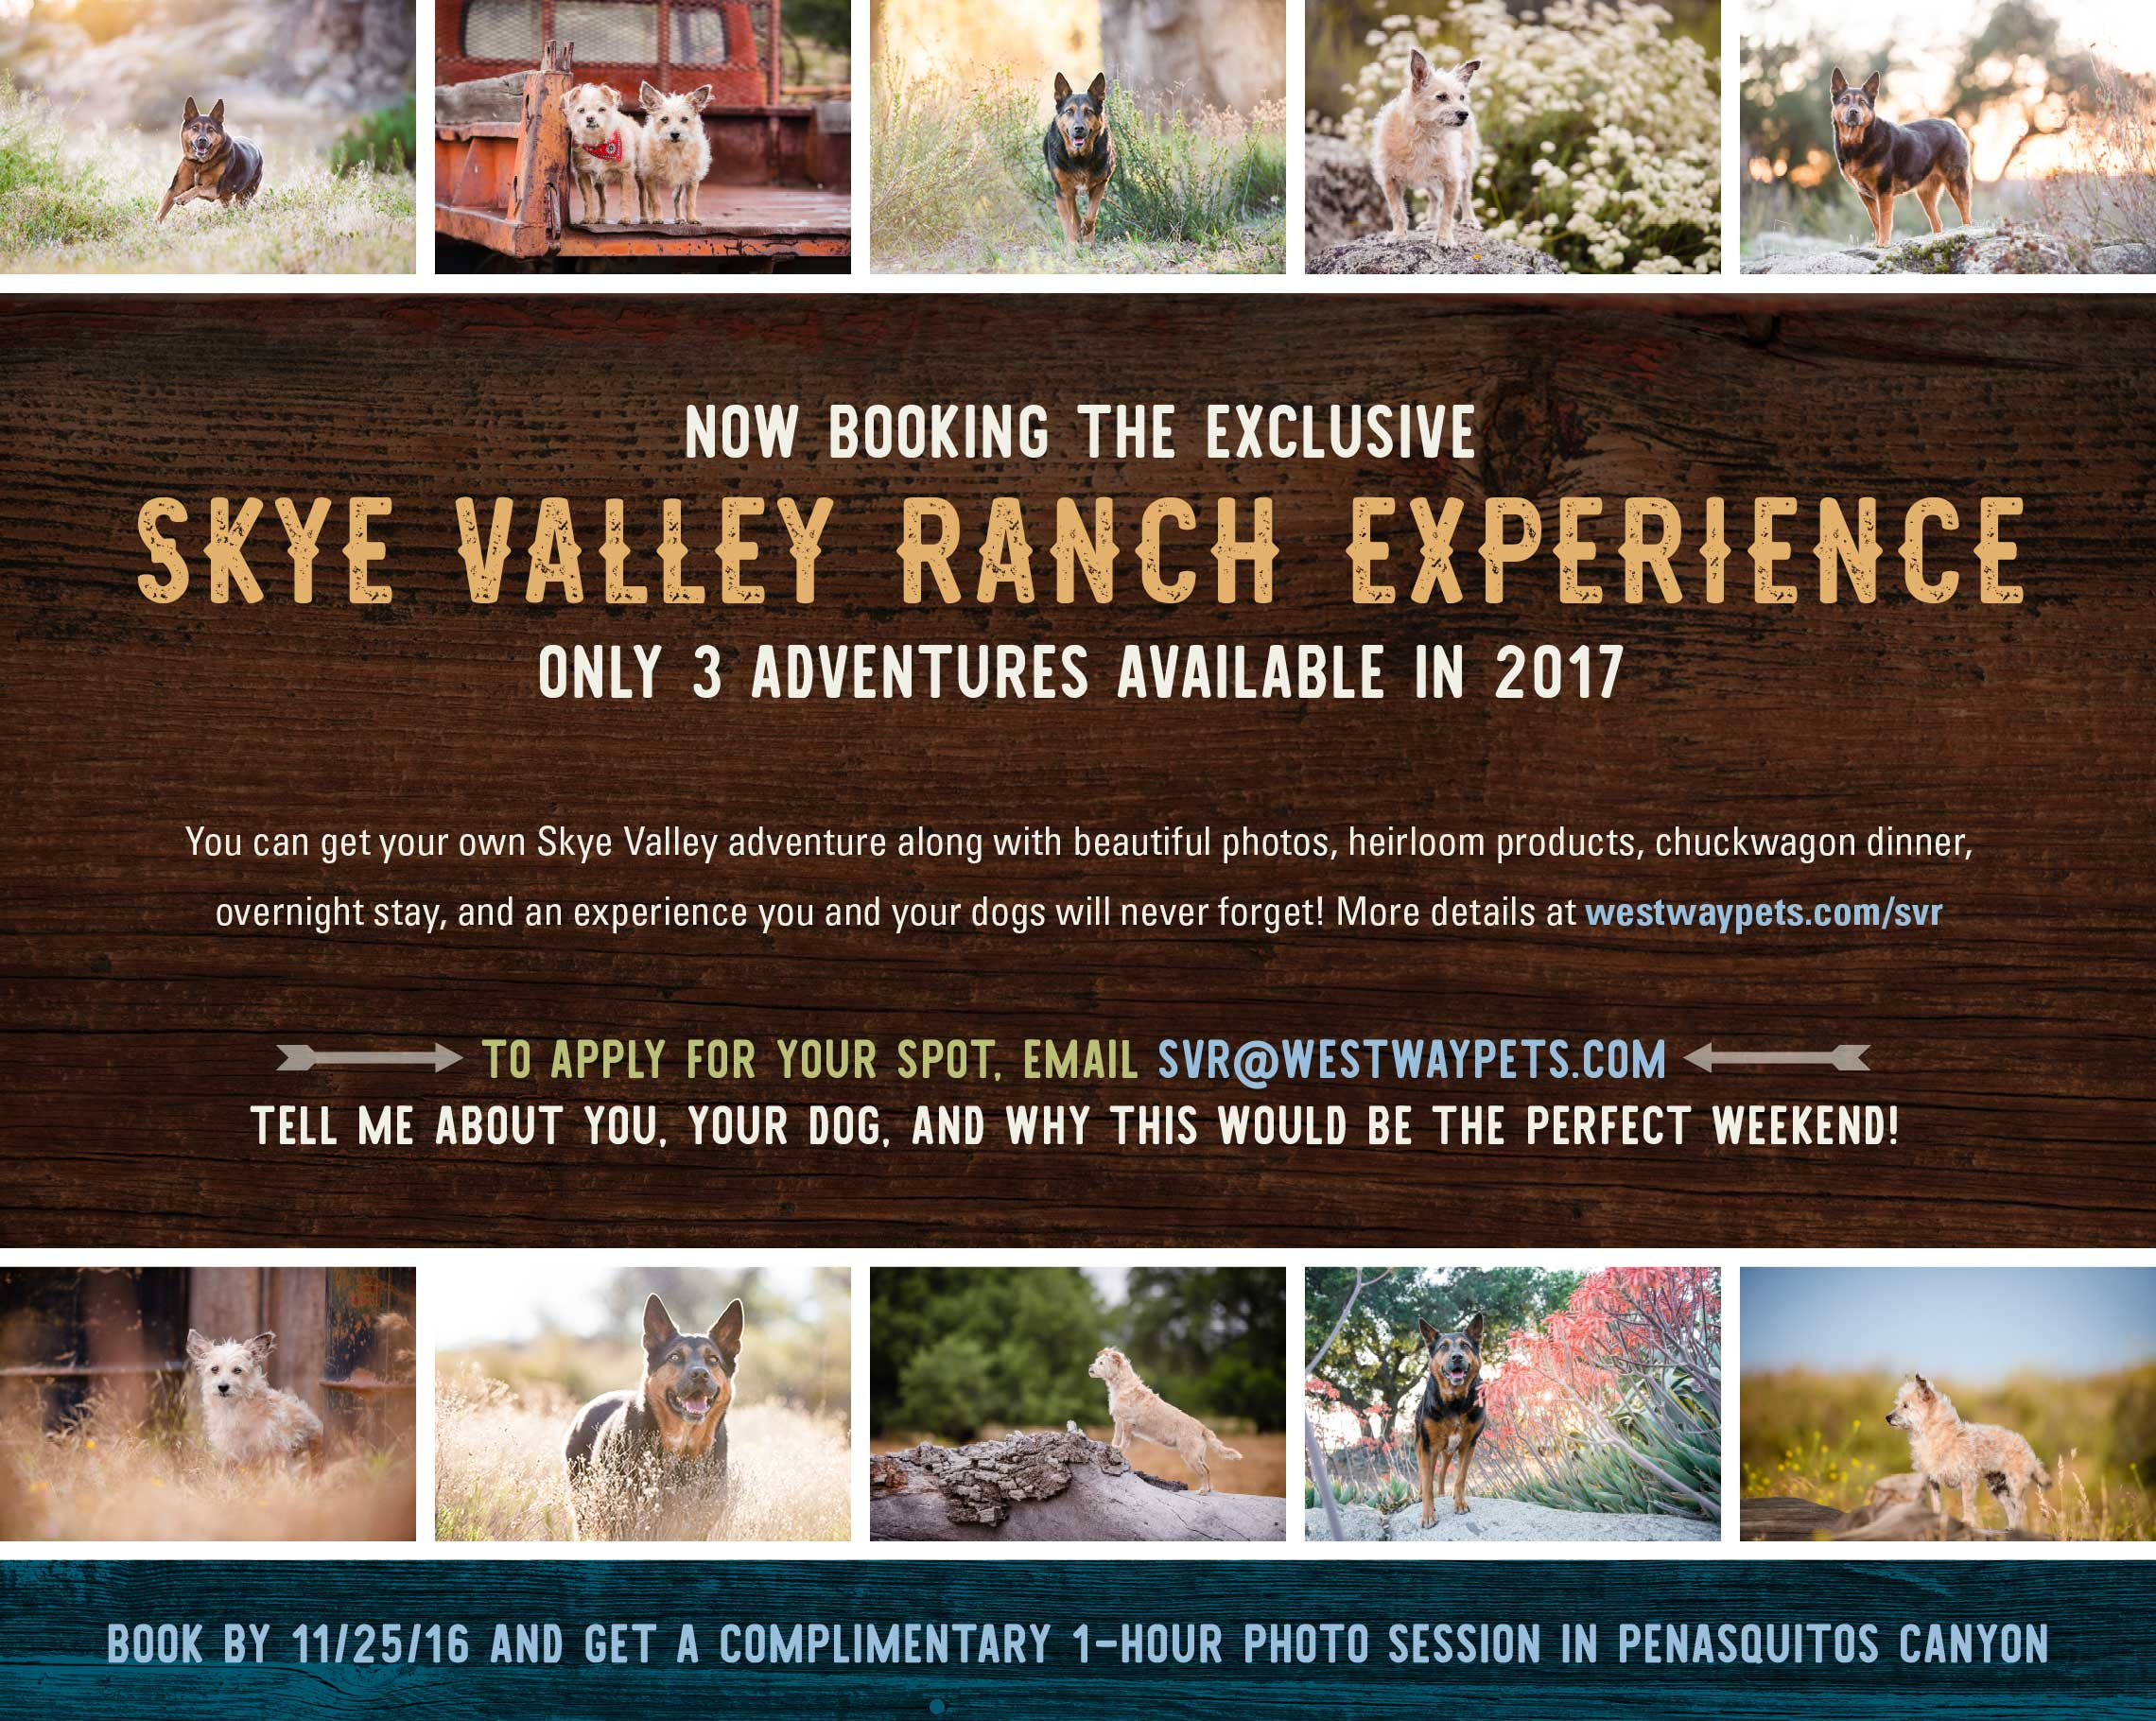 Now booking the 2017 Skye Valley Ranch Experience